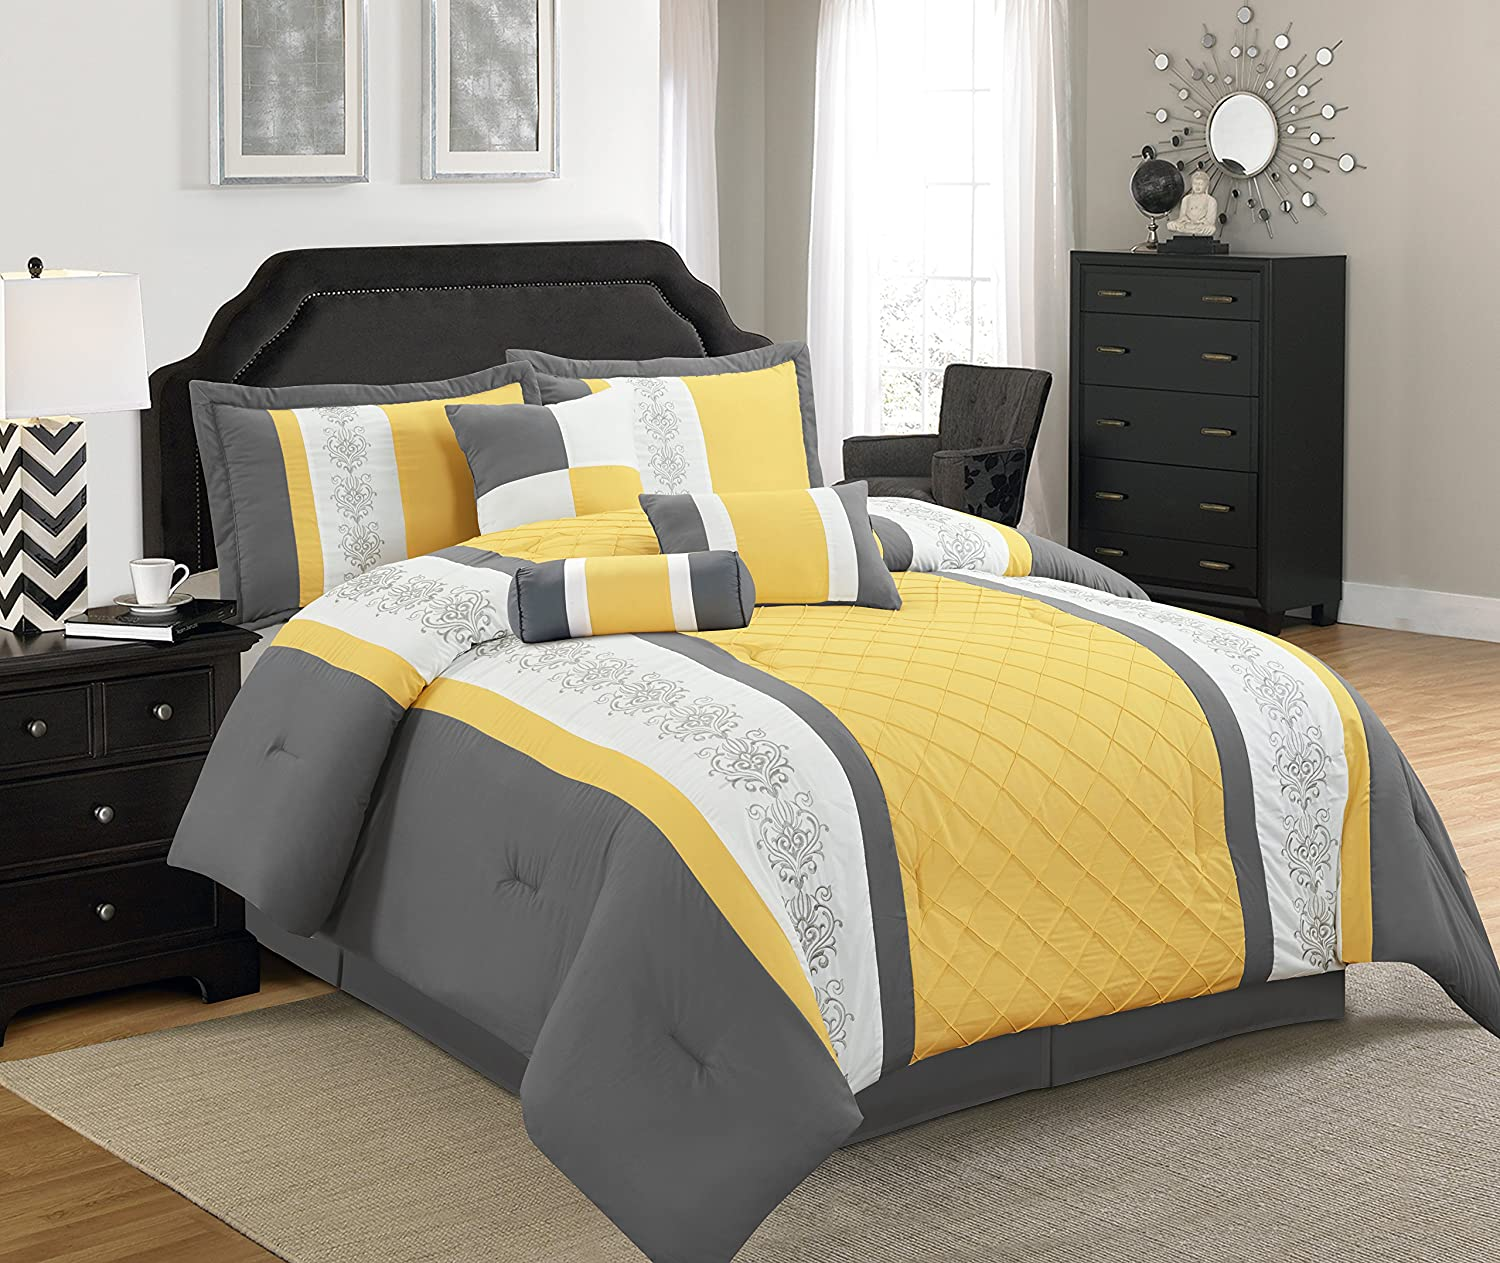 gray with yet striped simple wall sets combined exposed pillow grey white covers brick and bedding stunning designs comforter